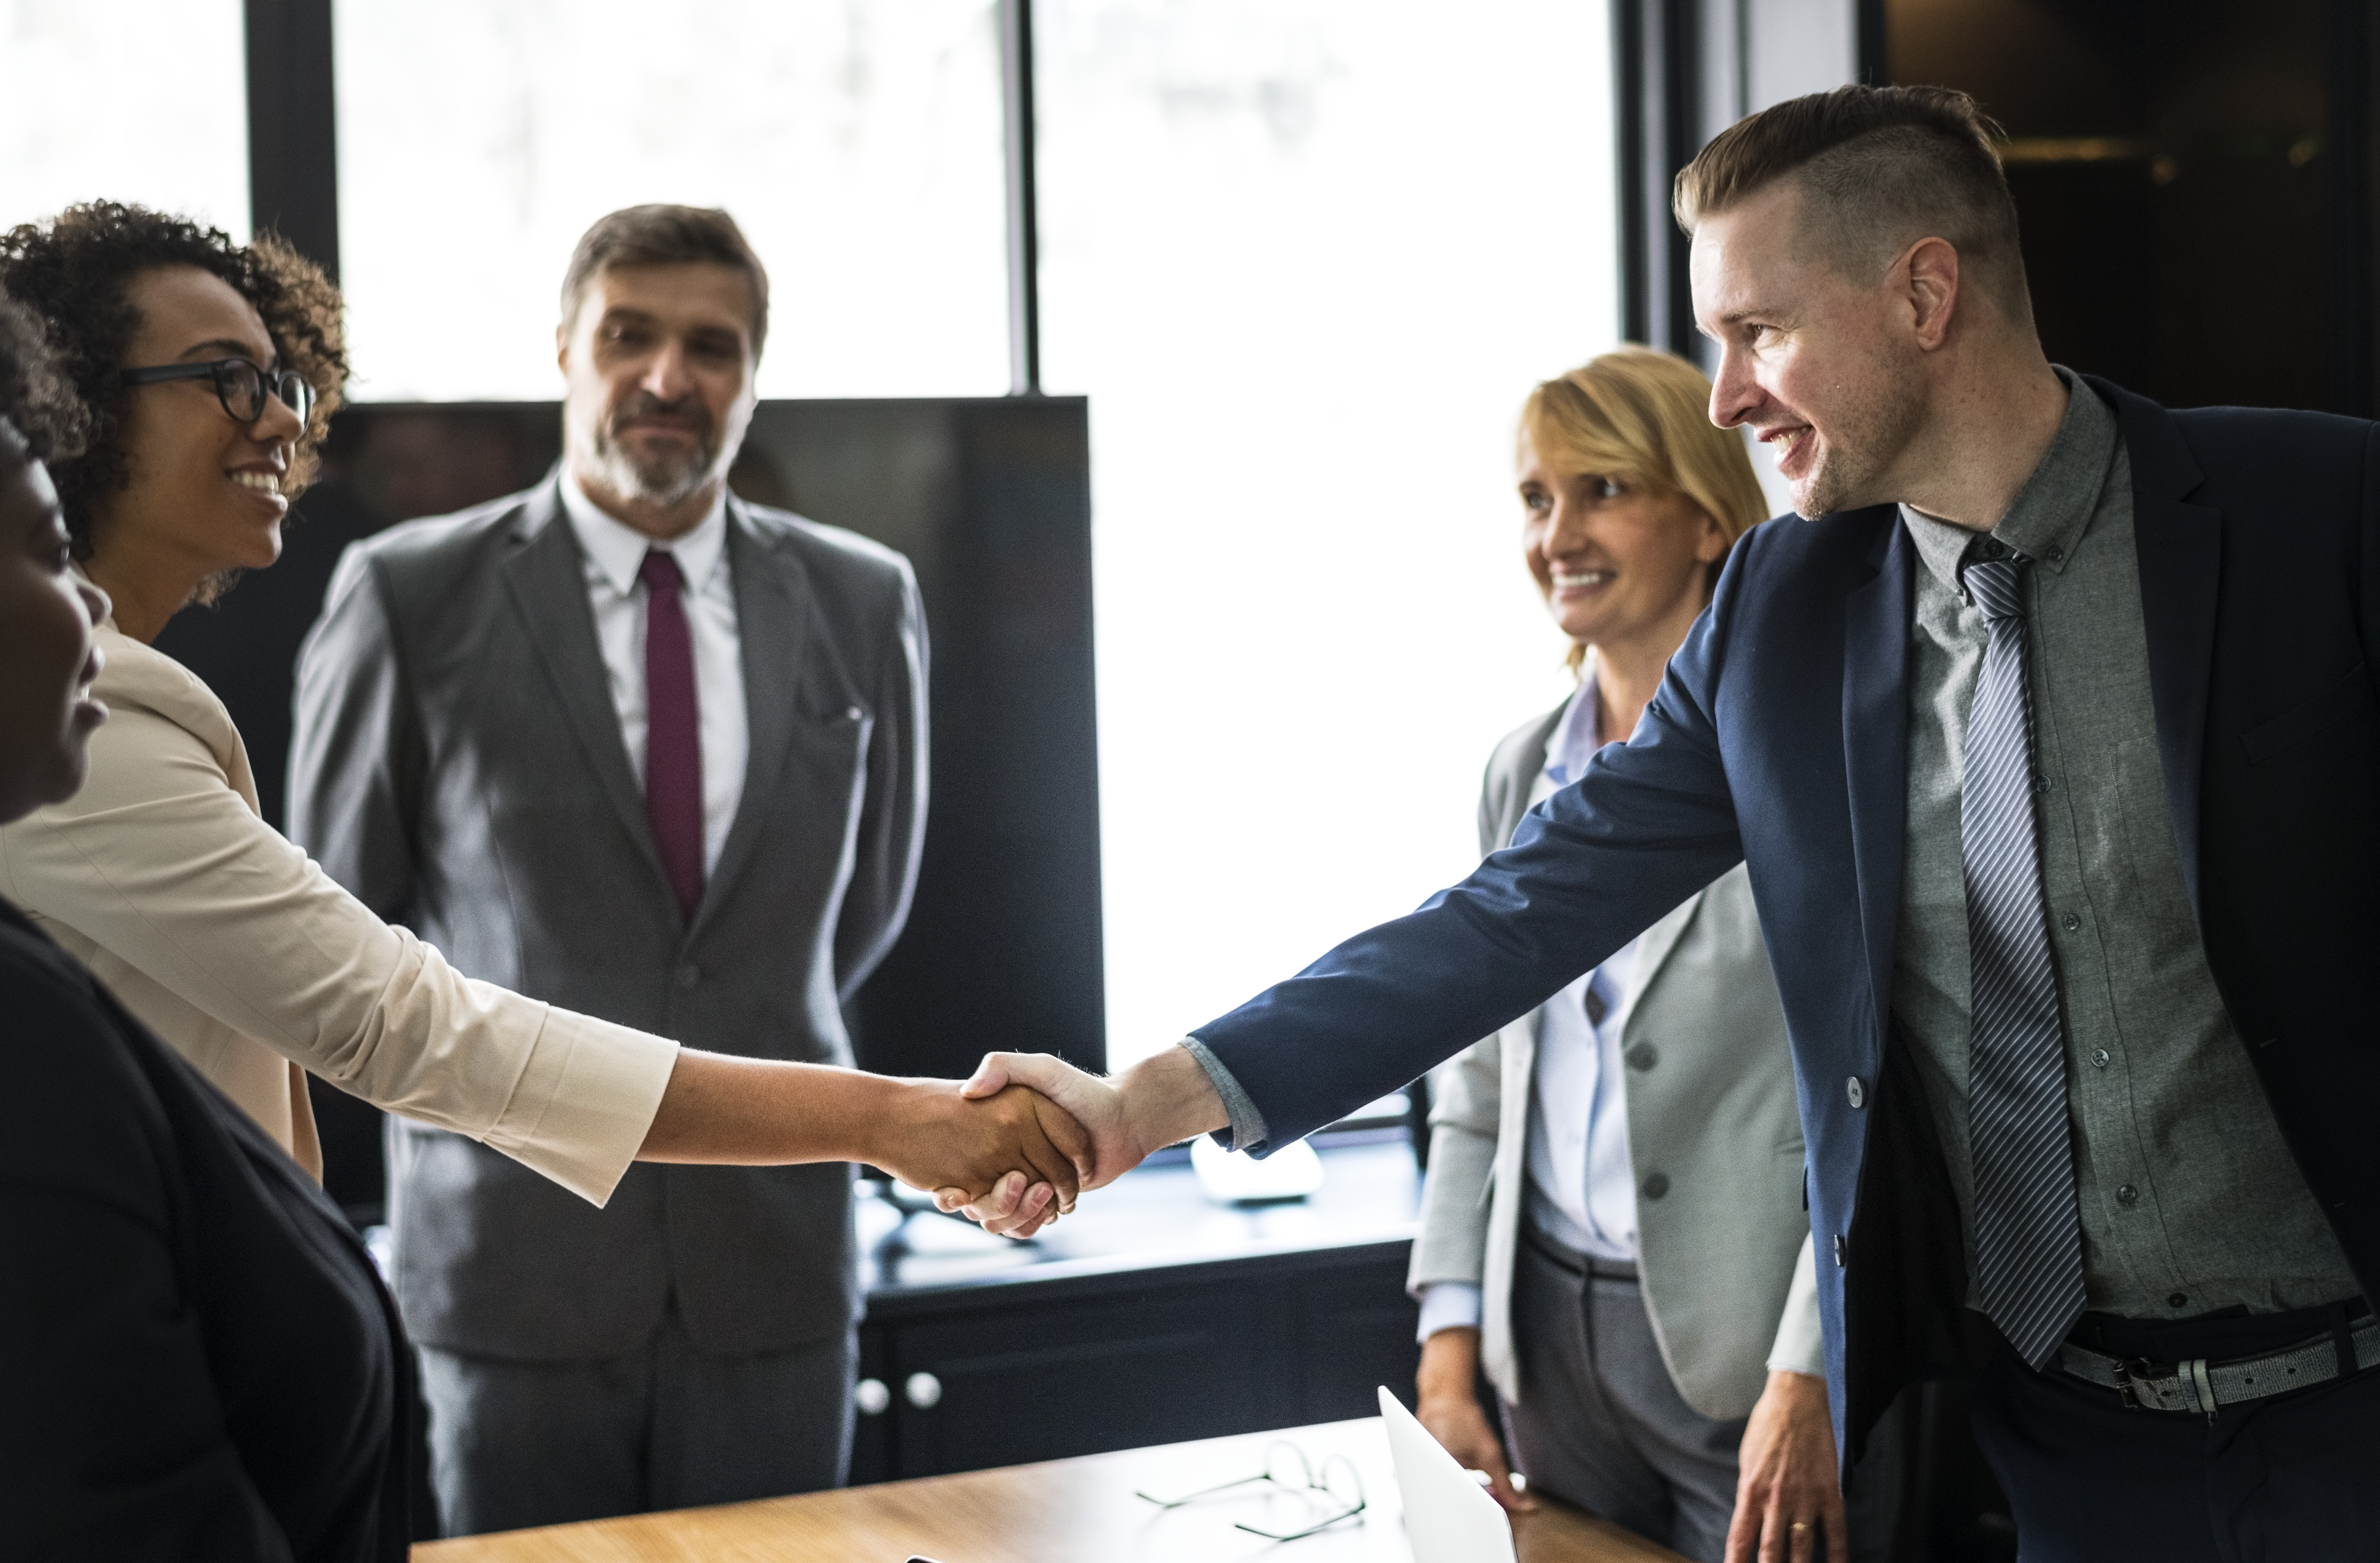 Business people shaking hands in a meeting room